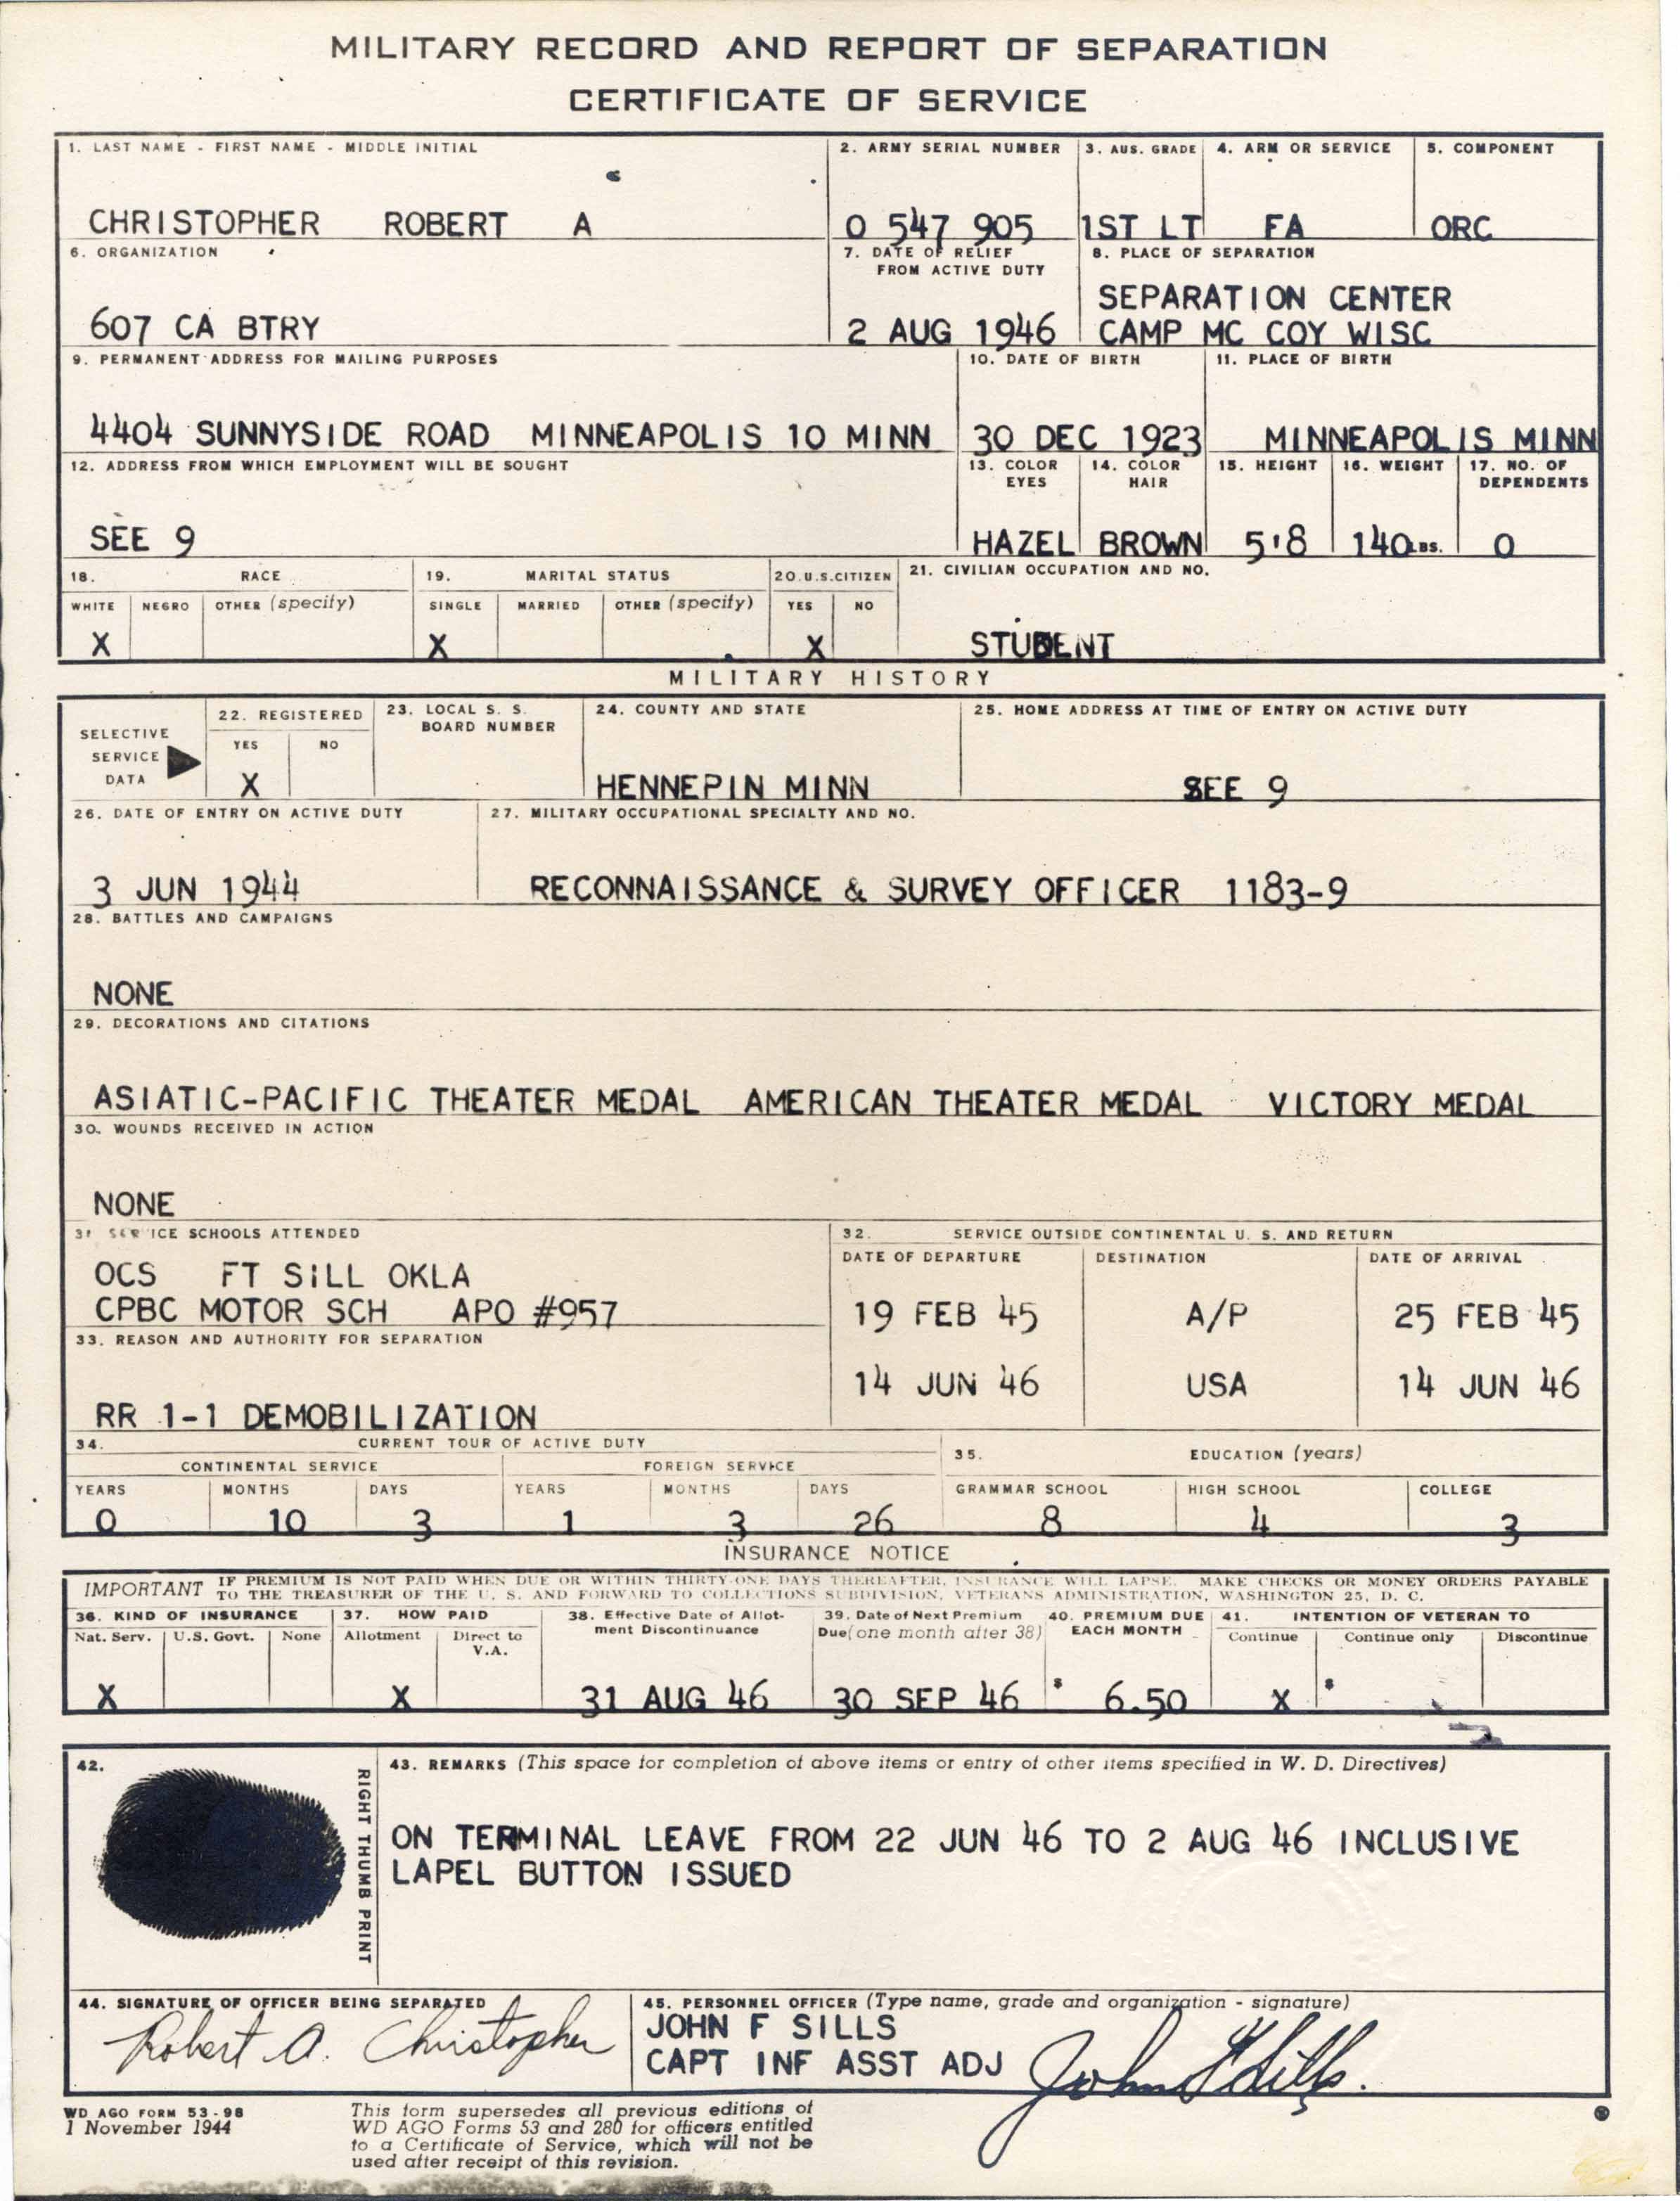 New collection of wisconsin birth certificate business cards and sources from wisconsin birth certificate image source bwchristopher aiddatafo Gallery